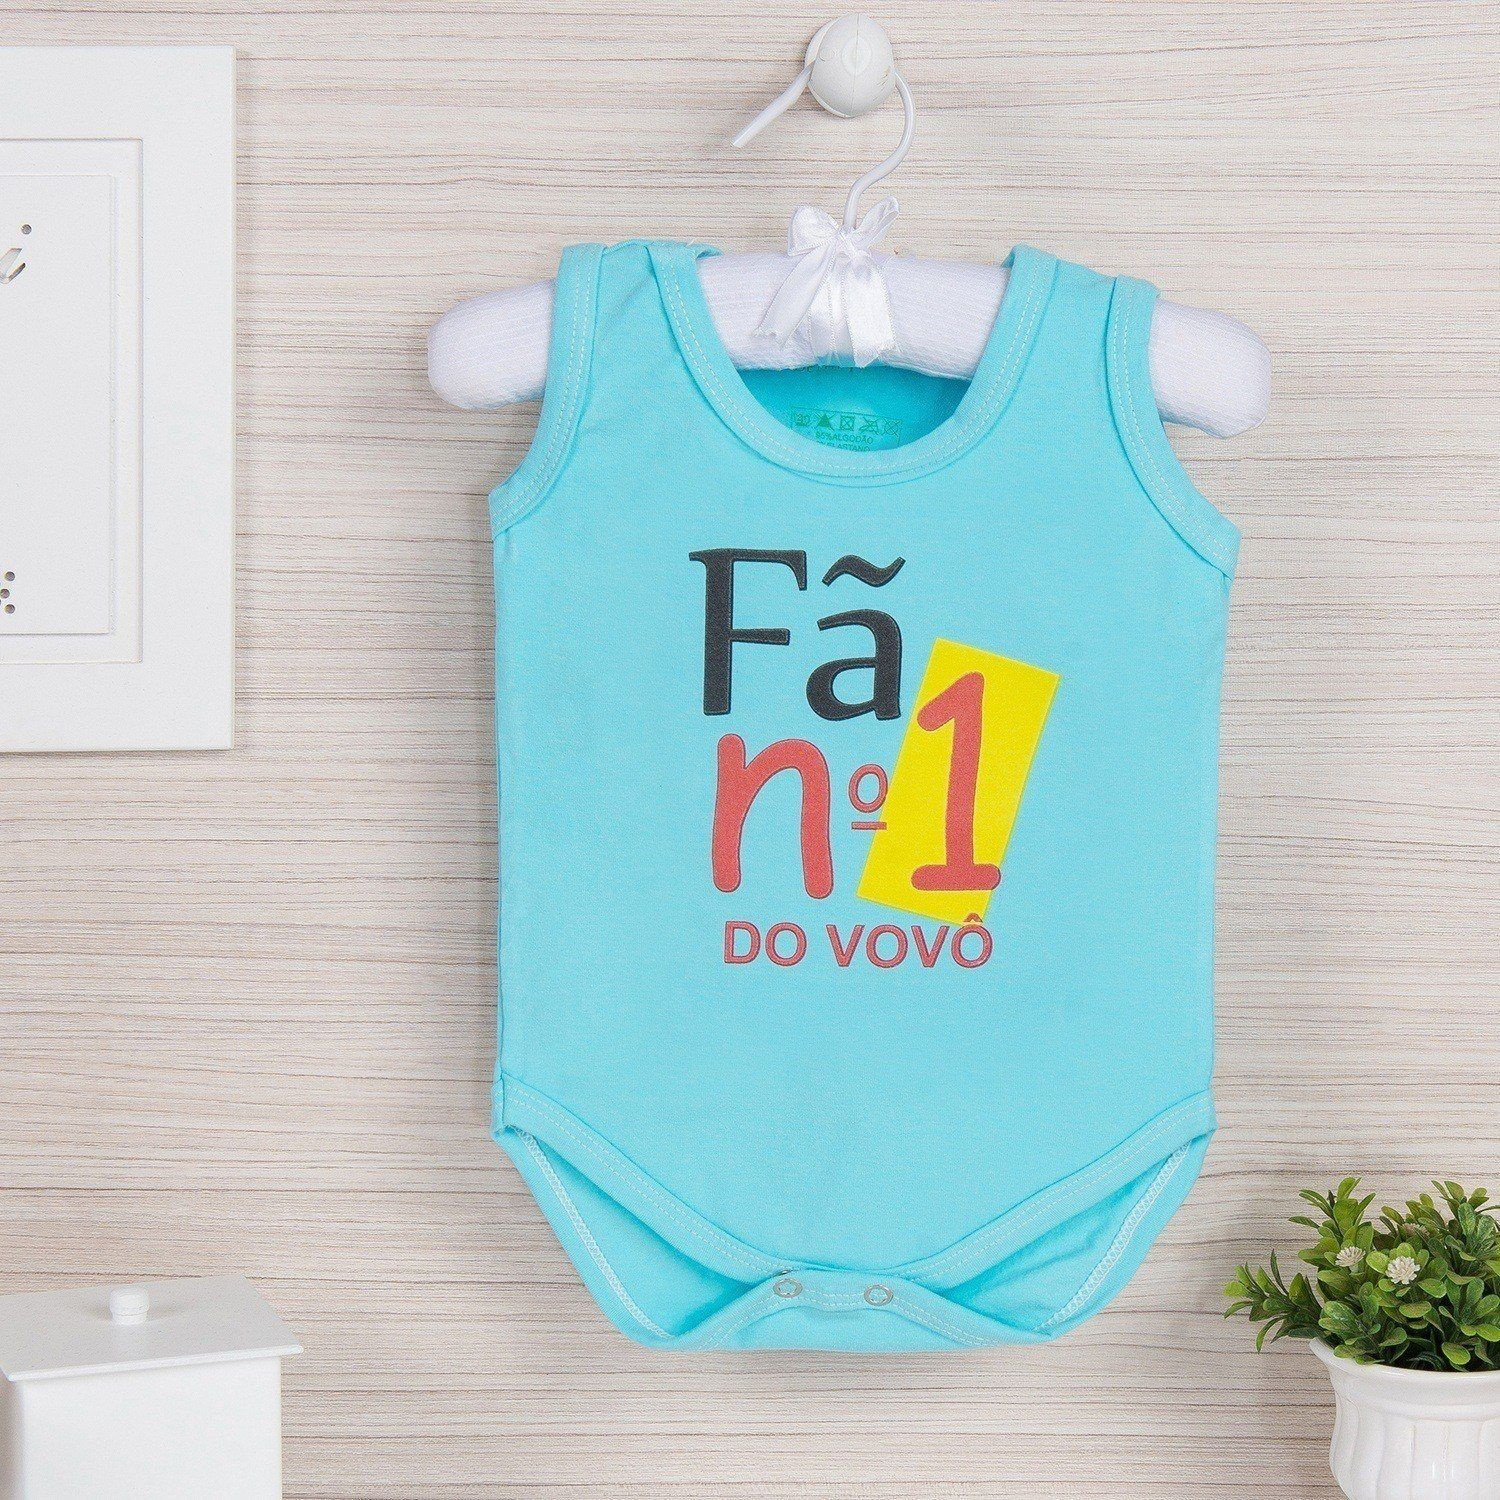 Body Regata Fã Número 1 do Vovô Azul 9 a 12 meses